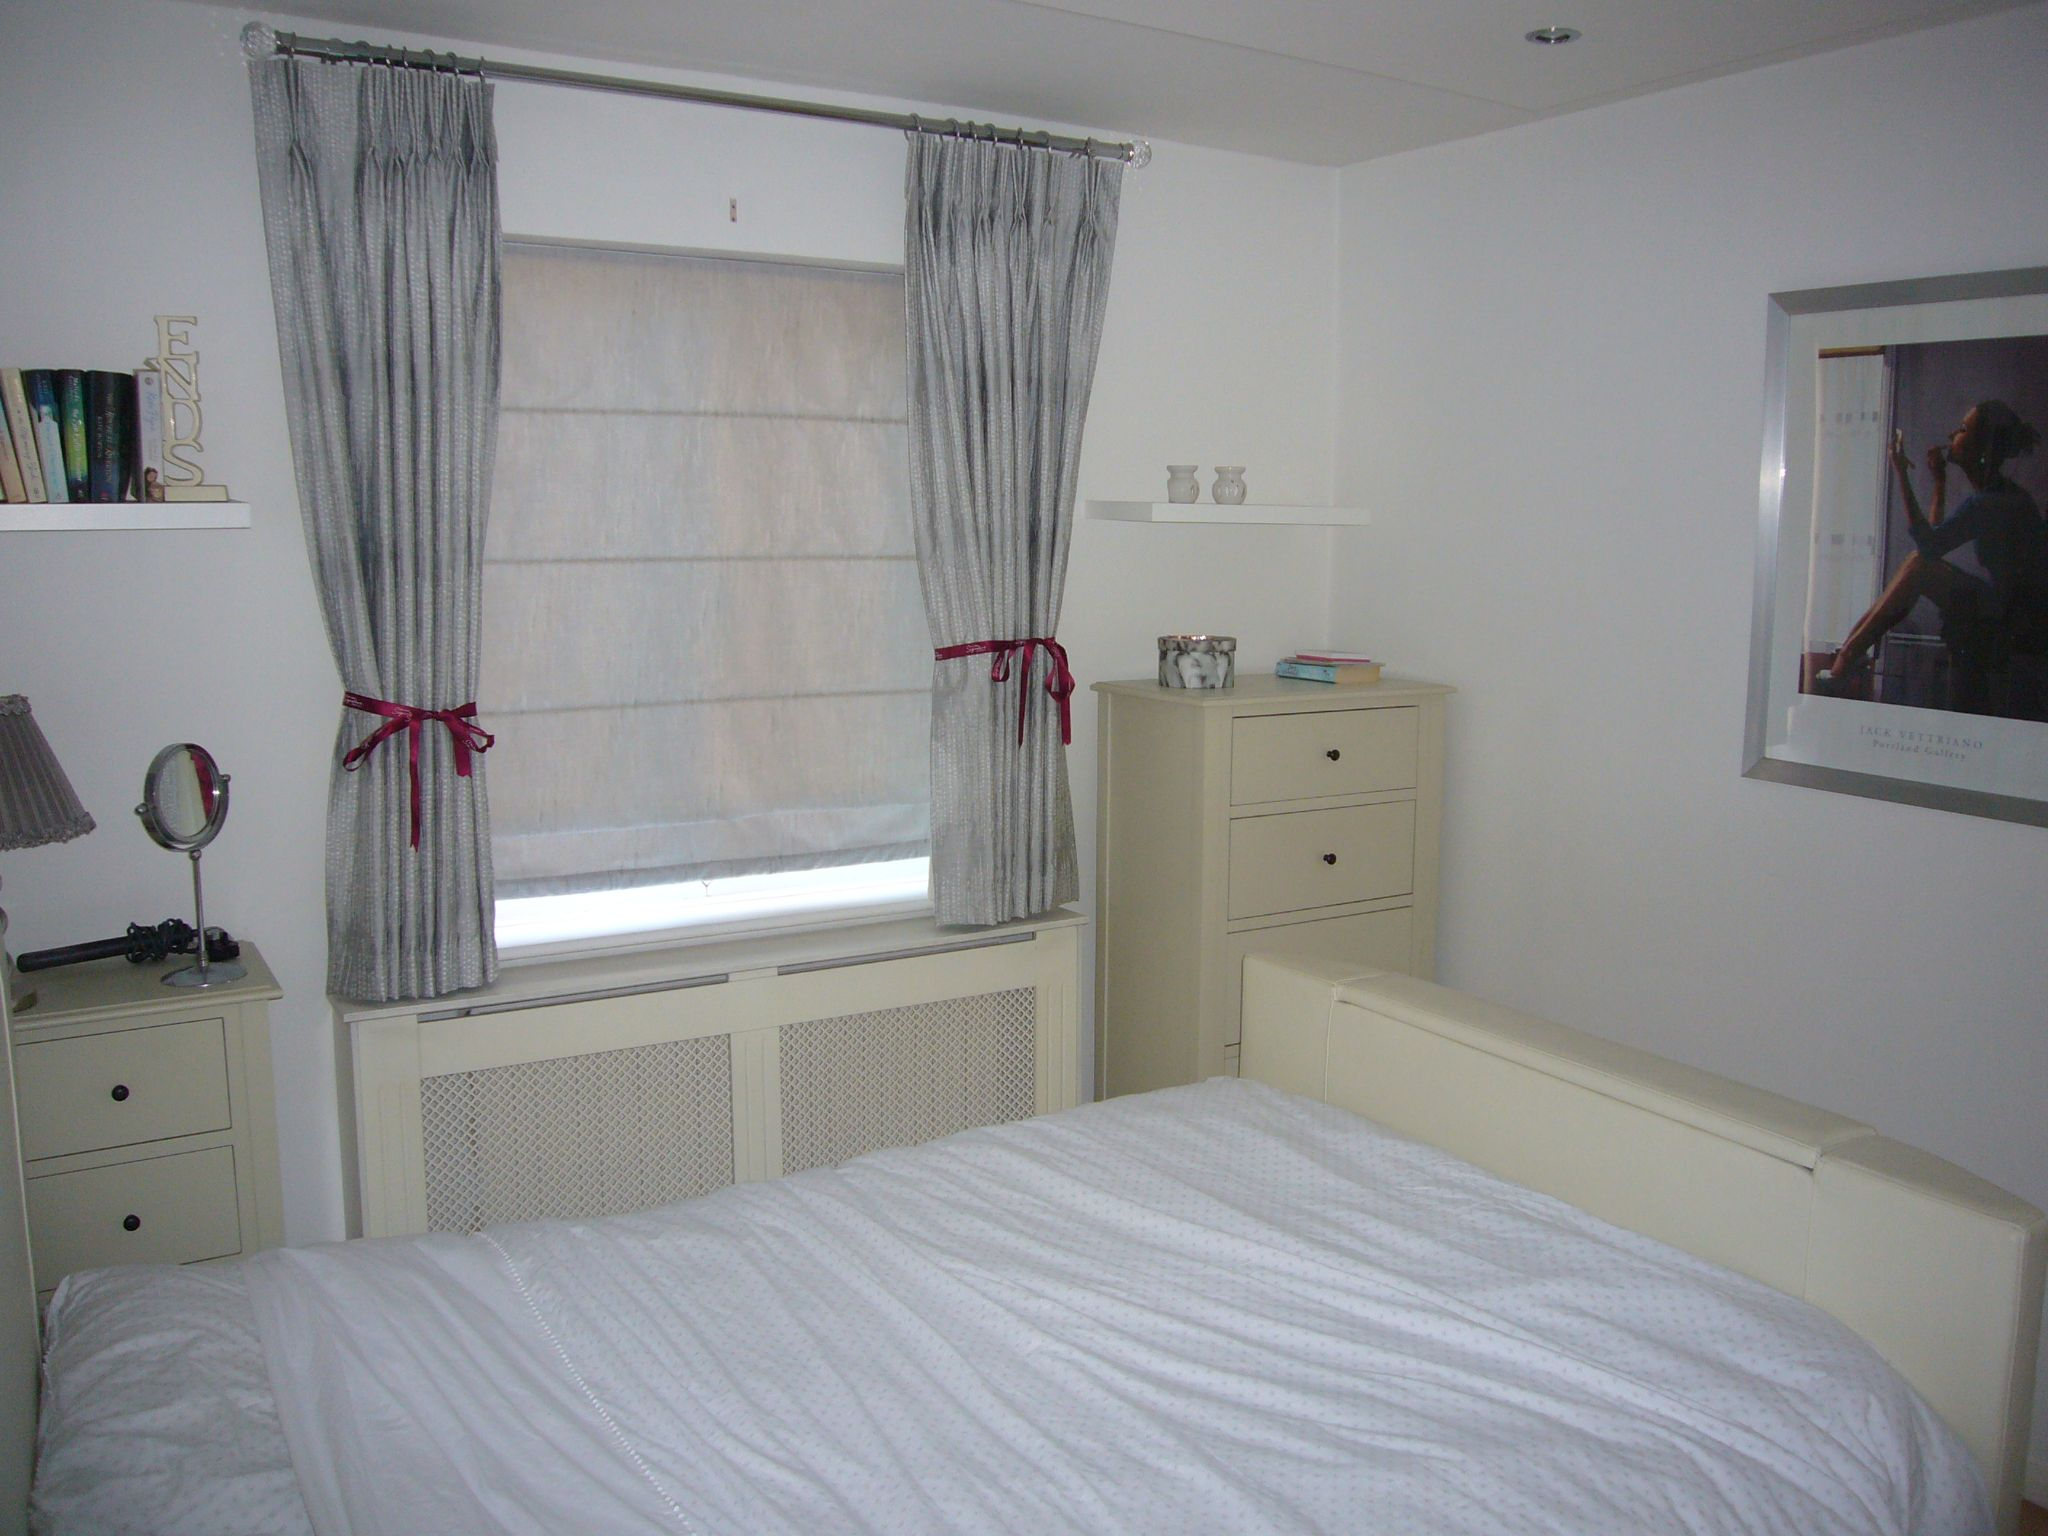 2 bedroom apartment flat/apartment Let Agreed in Sutton - Photograph 5.